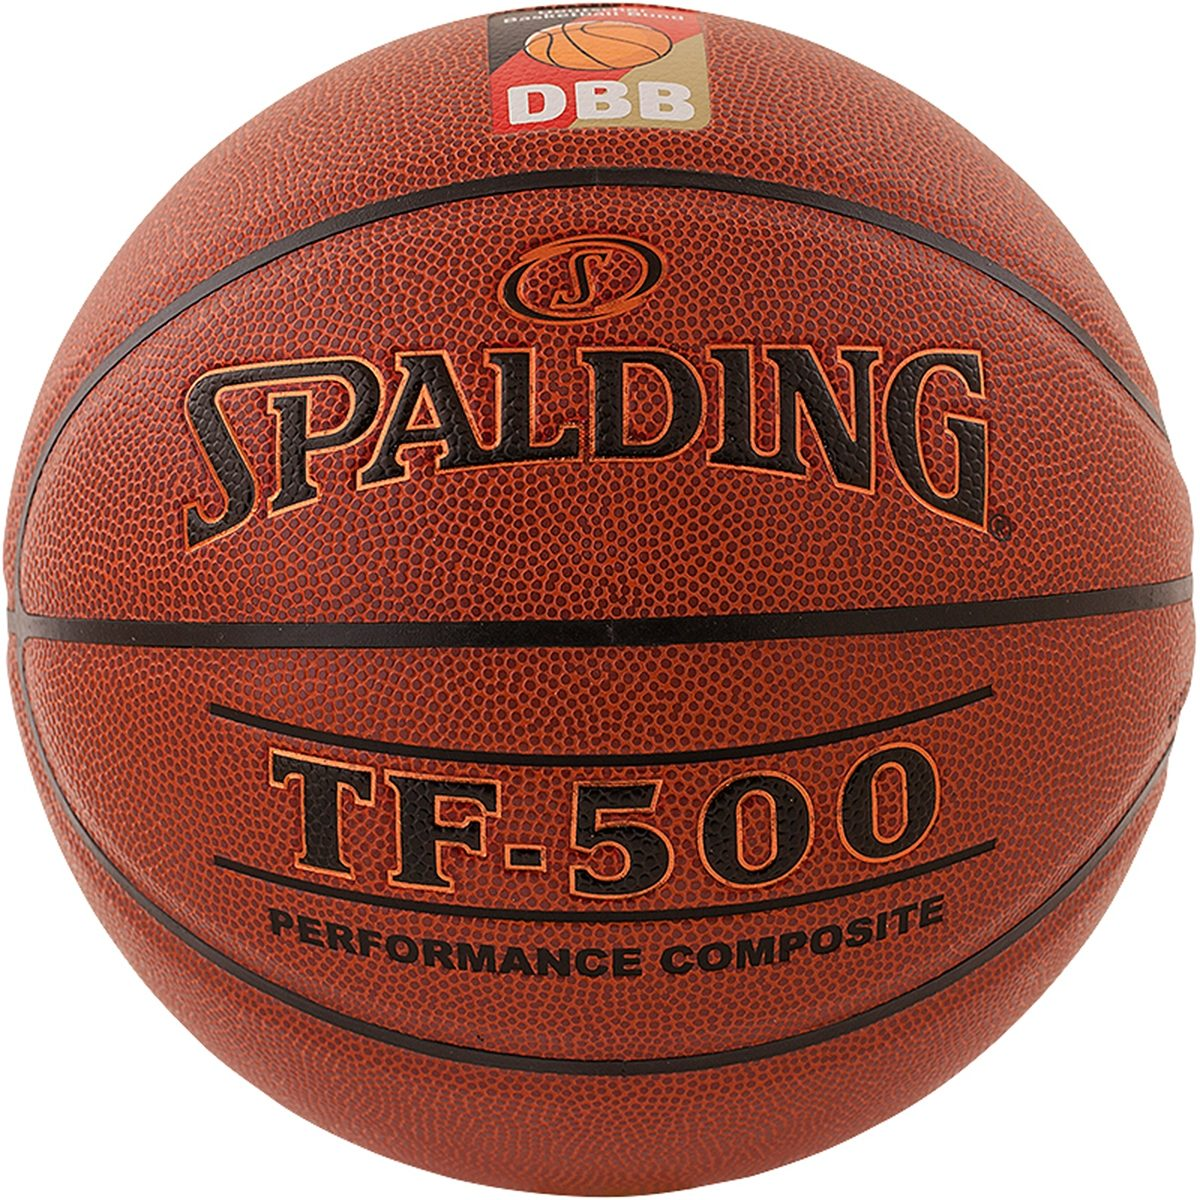 SPALDING TF500 DBB Indoor Basketball